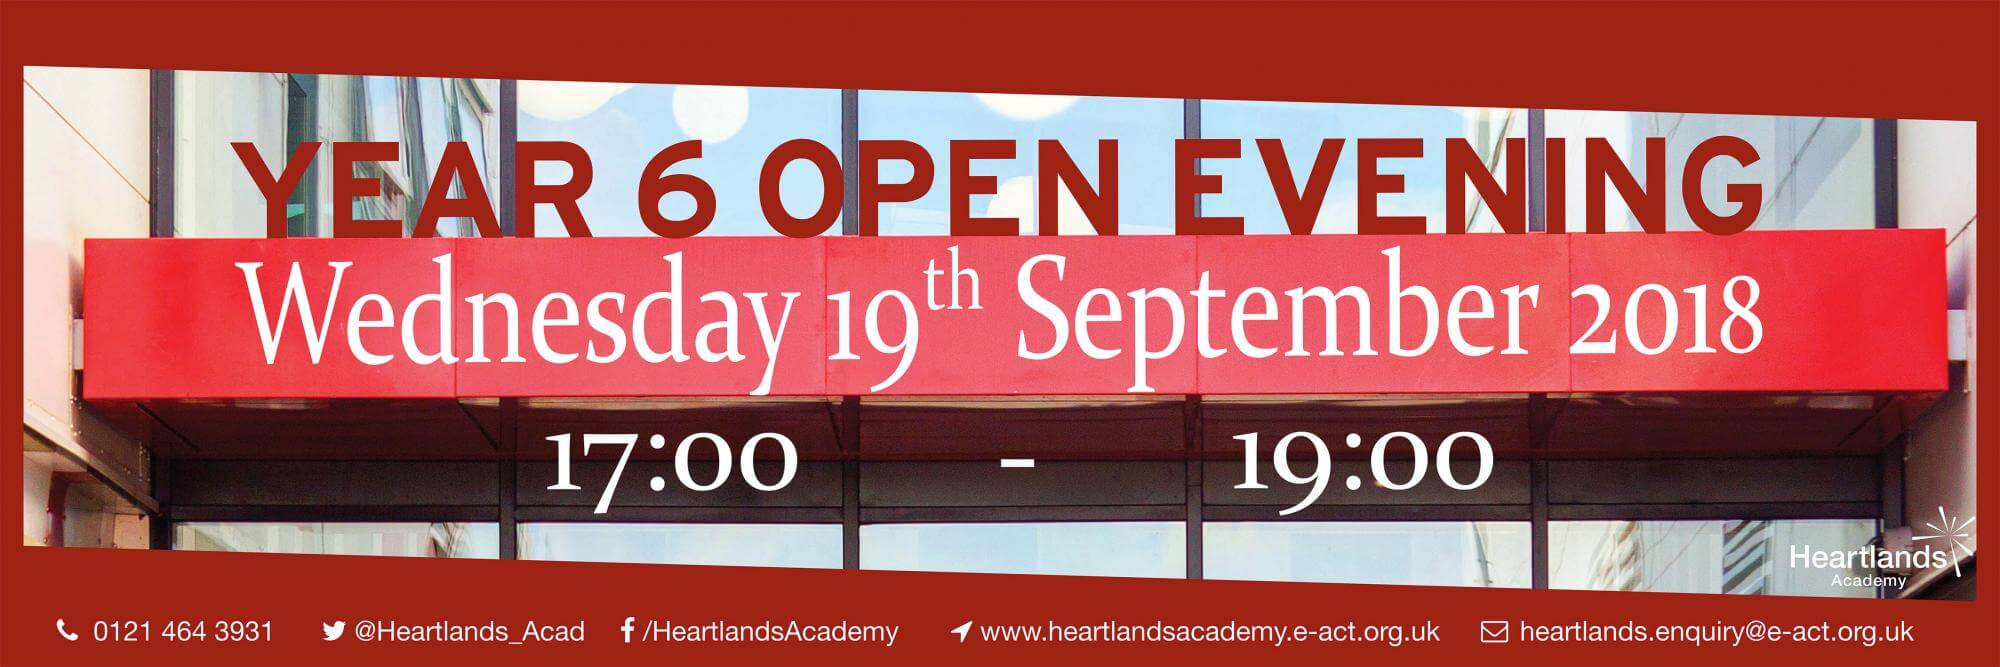 Year 6 Open Evening, Wednesday 19 September, 17:00 - 19:00